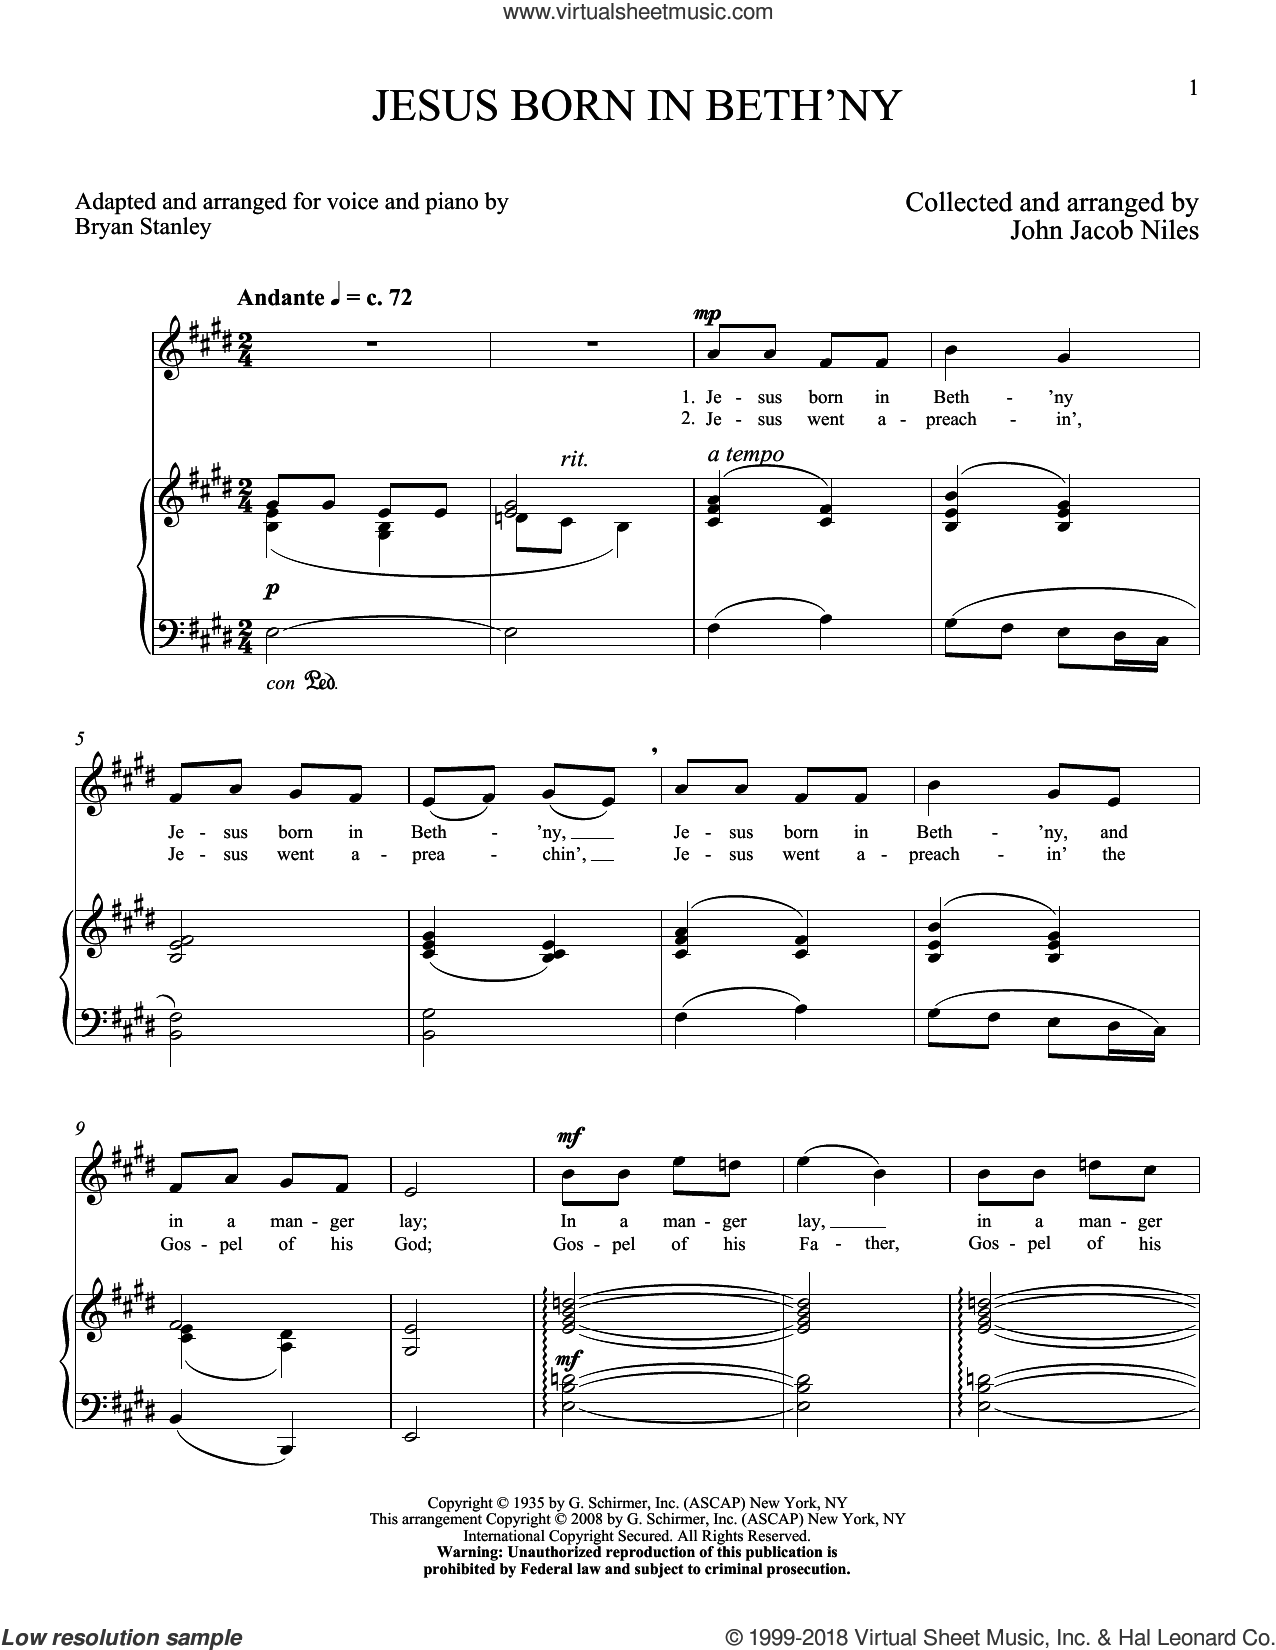 Jesus Born In Beth'ny sheet music for voice and piano (High Voice) by John Jacob Niles, intermediate skill level